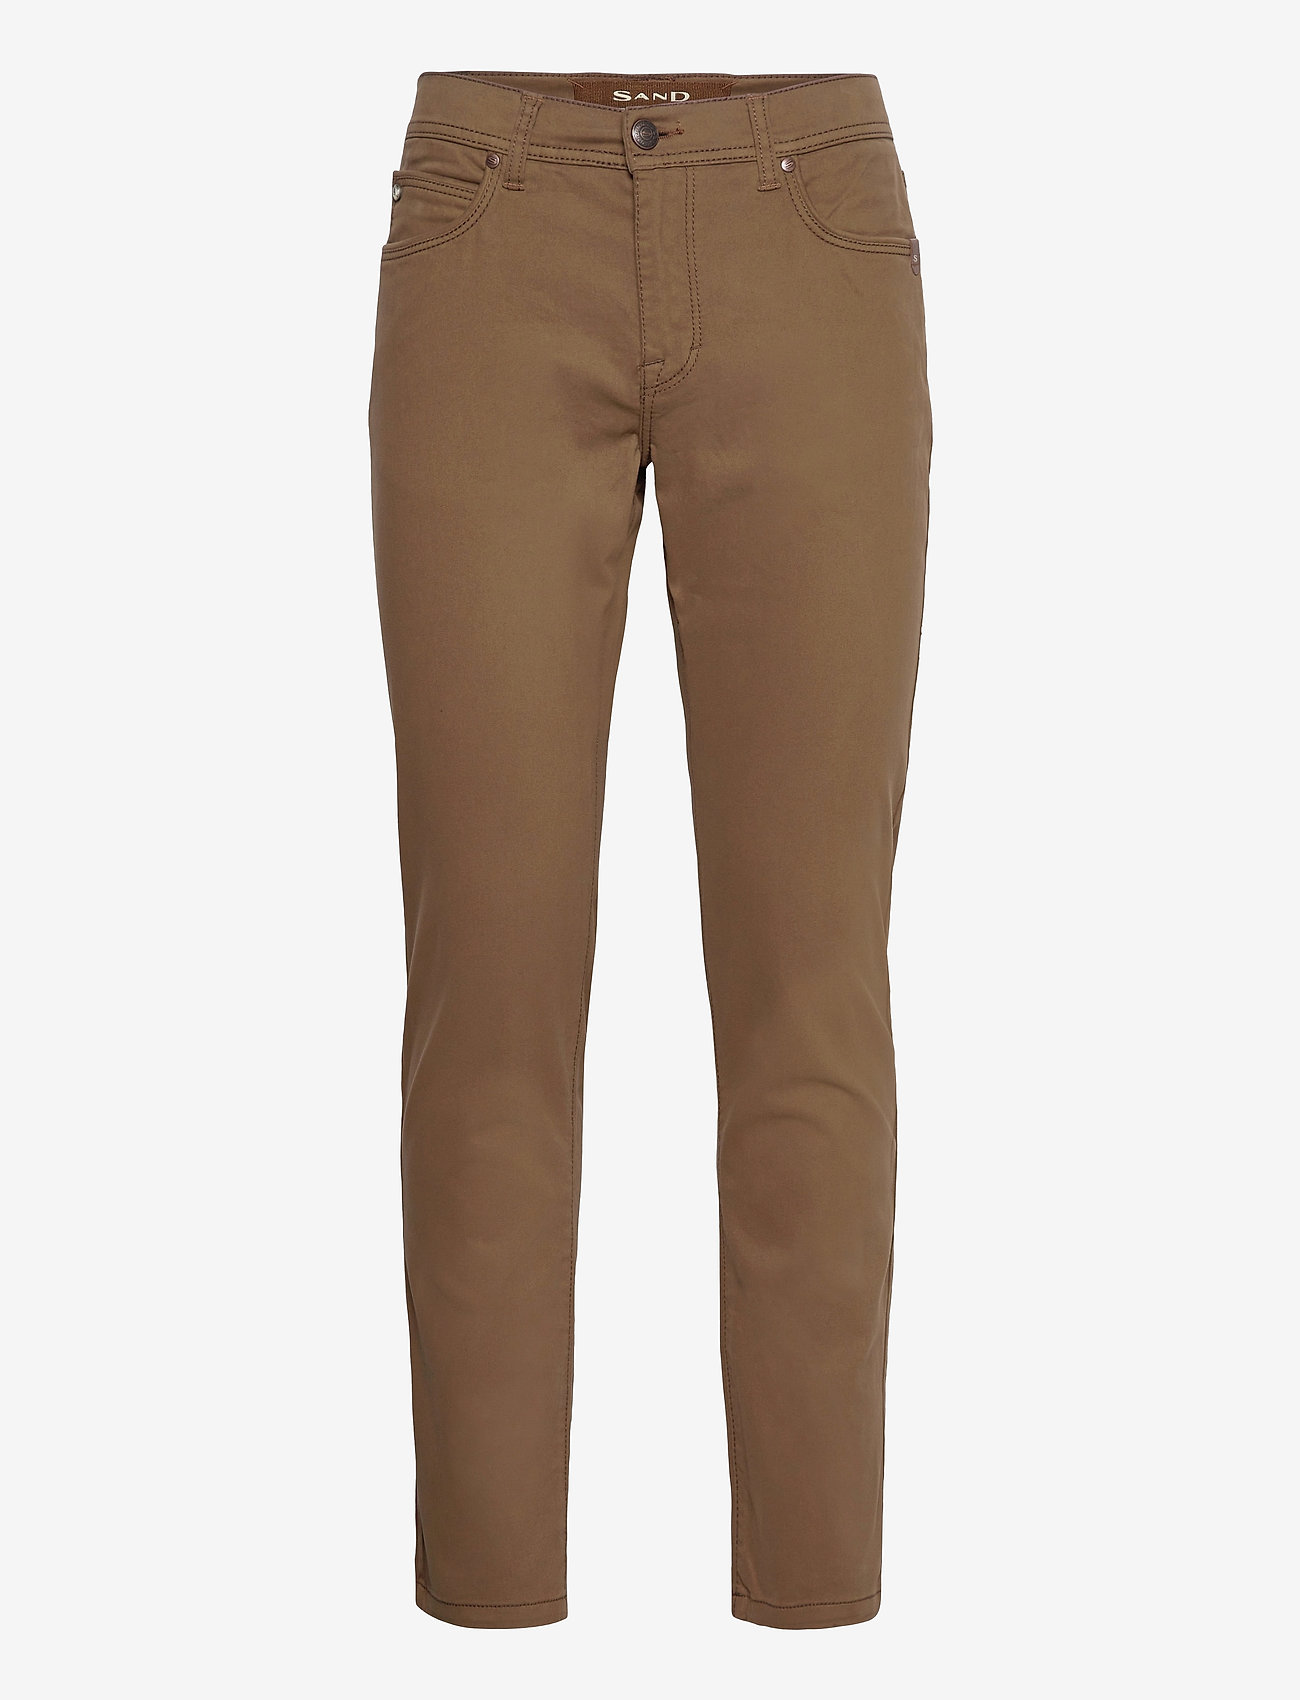 """SAND - Suede Touch - Burton NS 30"""" - casual trousers - brown - 0"""